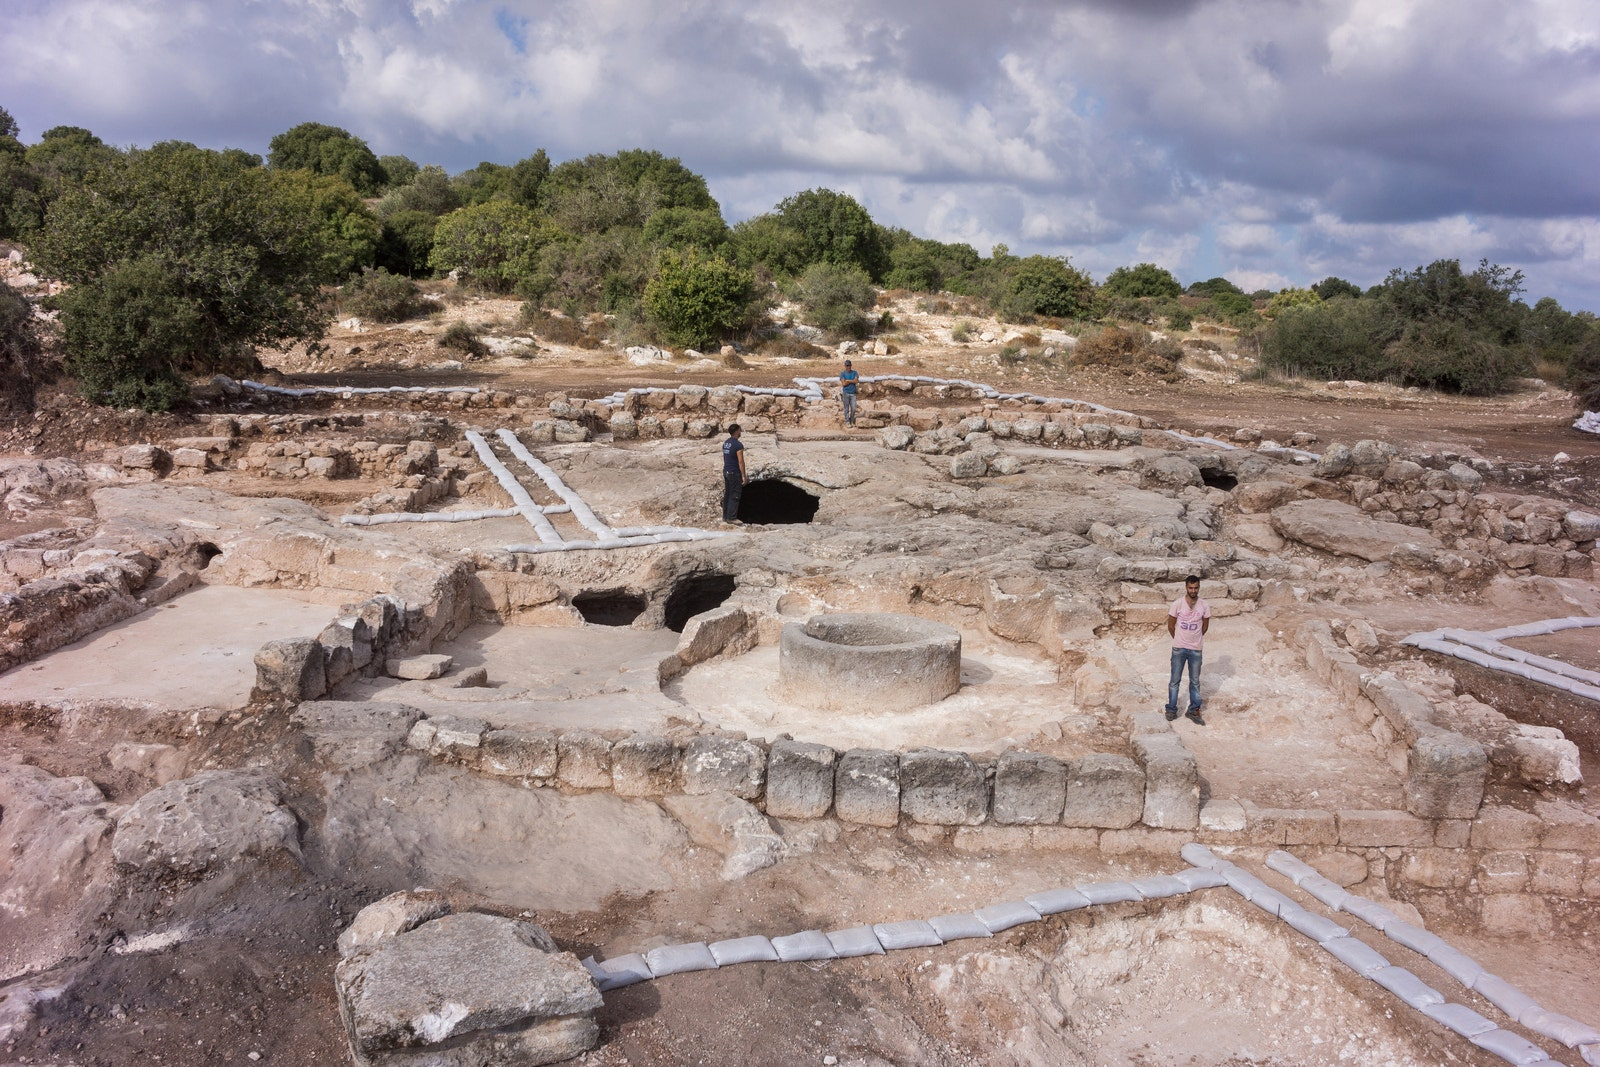 Archaeologists discover industrial scale wine production at ancient site